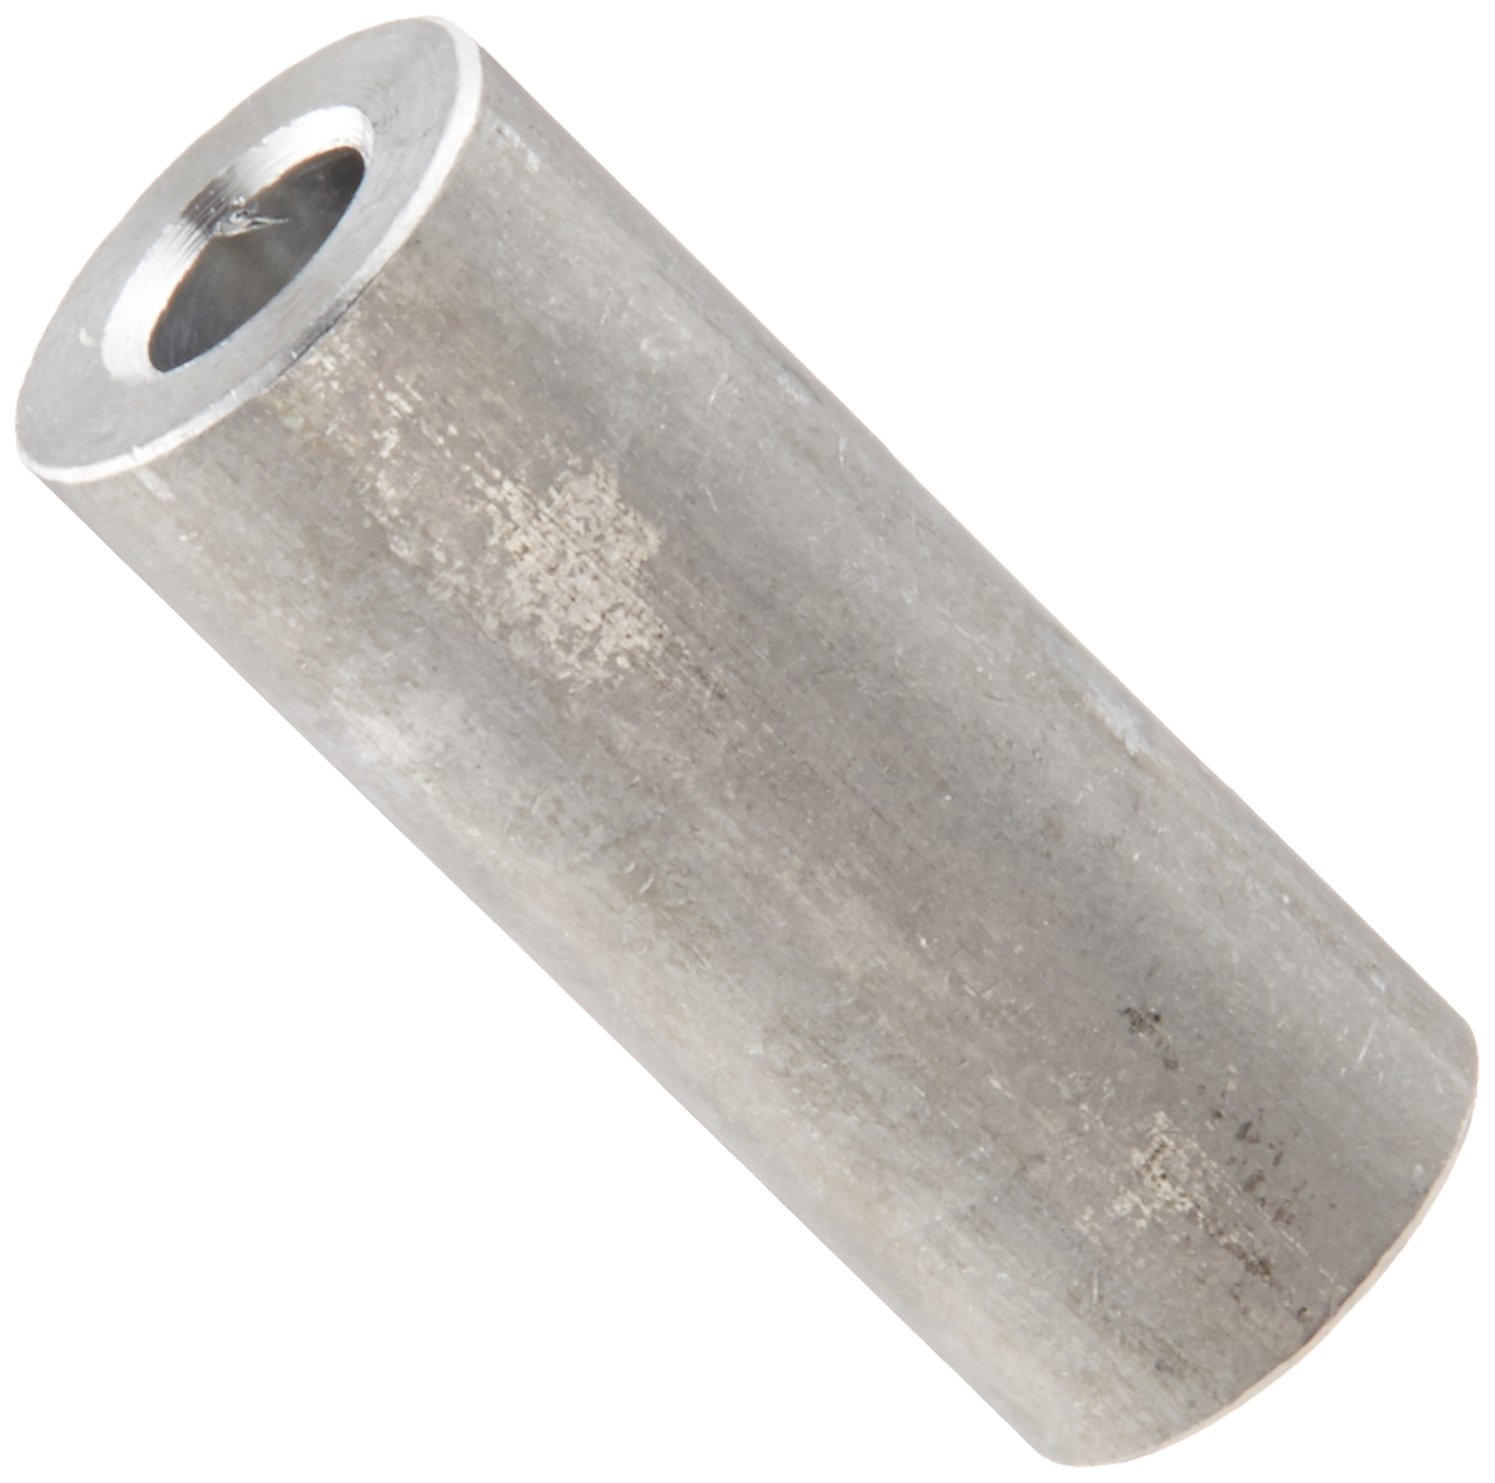 #6 Screw Size Plain Finish 1//4 OD 0.14 ID Aluminum Round Spacer 3//8 Length Pack of 25